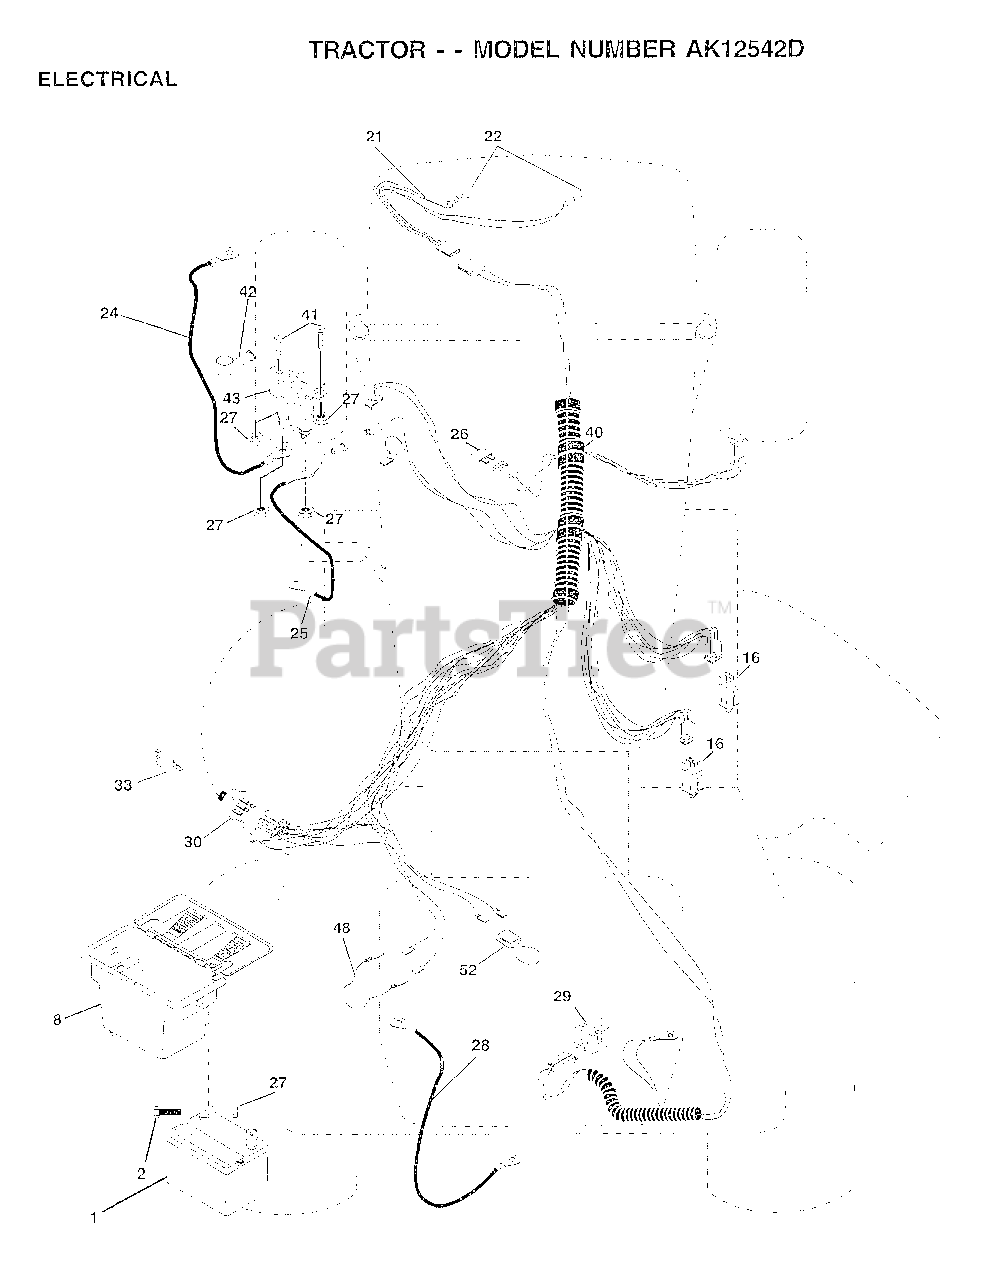 [DIAGRAM_38ZD]  Electrolux/AYP AK 12542 D - Electrolux/AYP Lawn Tractor ELECTRICAL Parts  Lookup with Diagrams   PartsTree   Lawn Tractors Wiring Diagram For Electrolux      PartsTree